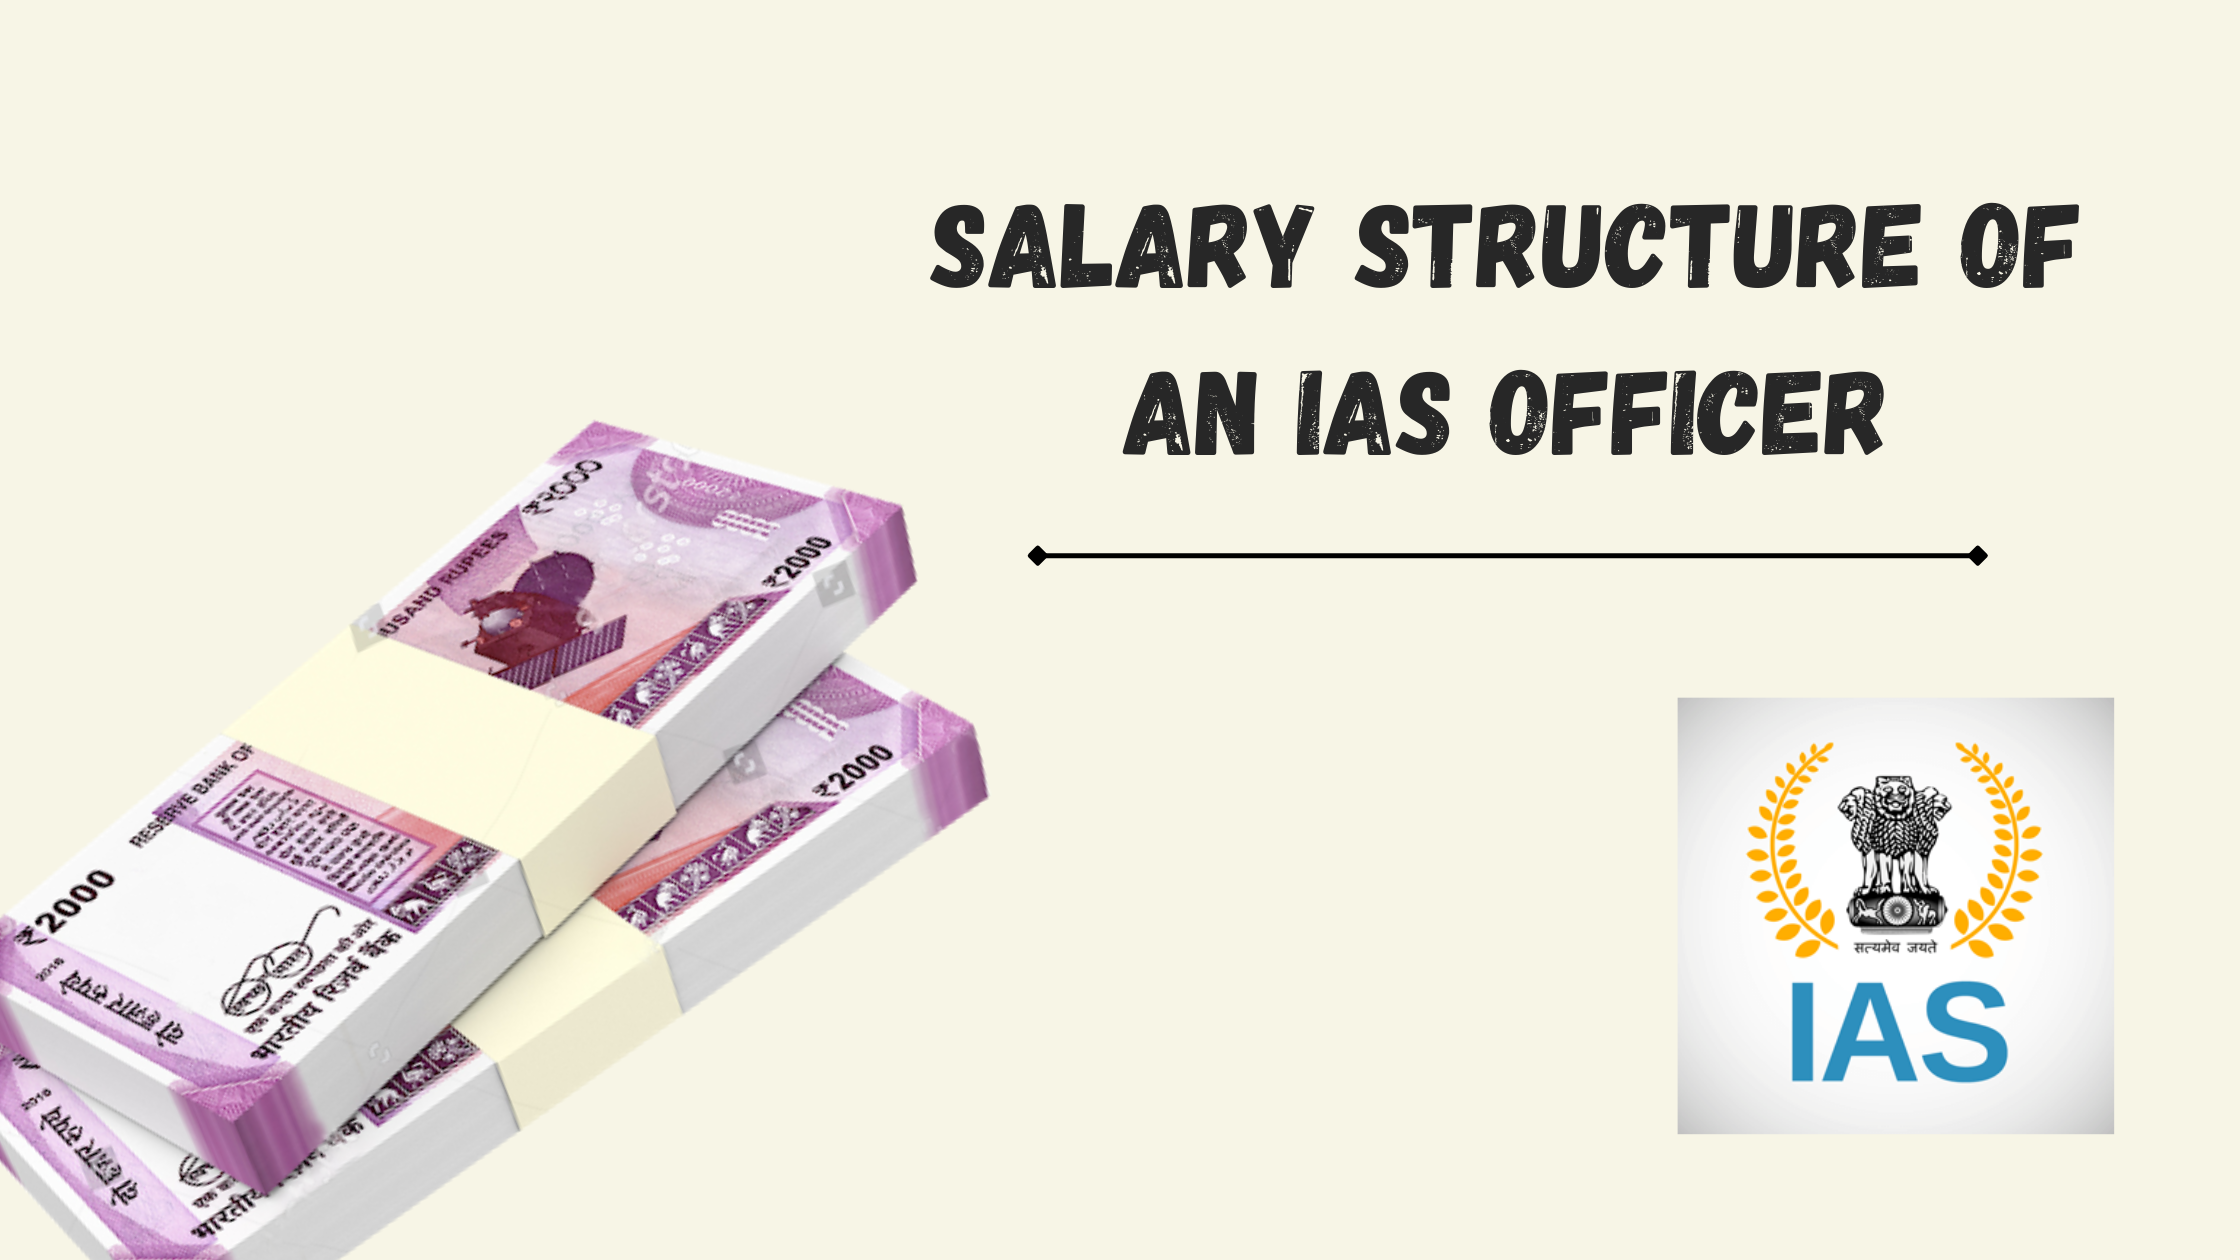 Indian Administrative Service (IAS) Officer being one of the prestigious careers in India, many are curious about Salary structure of an IAS